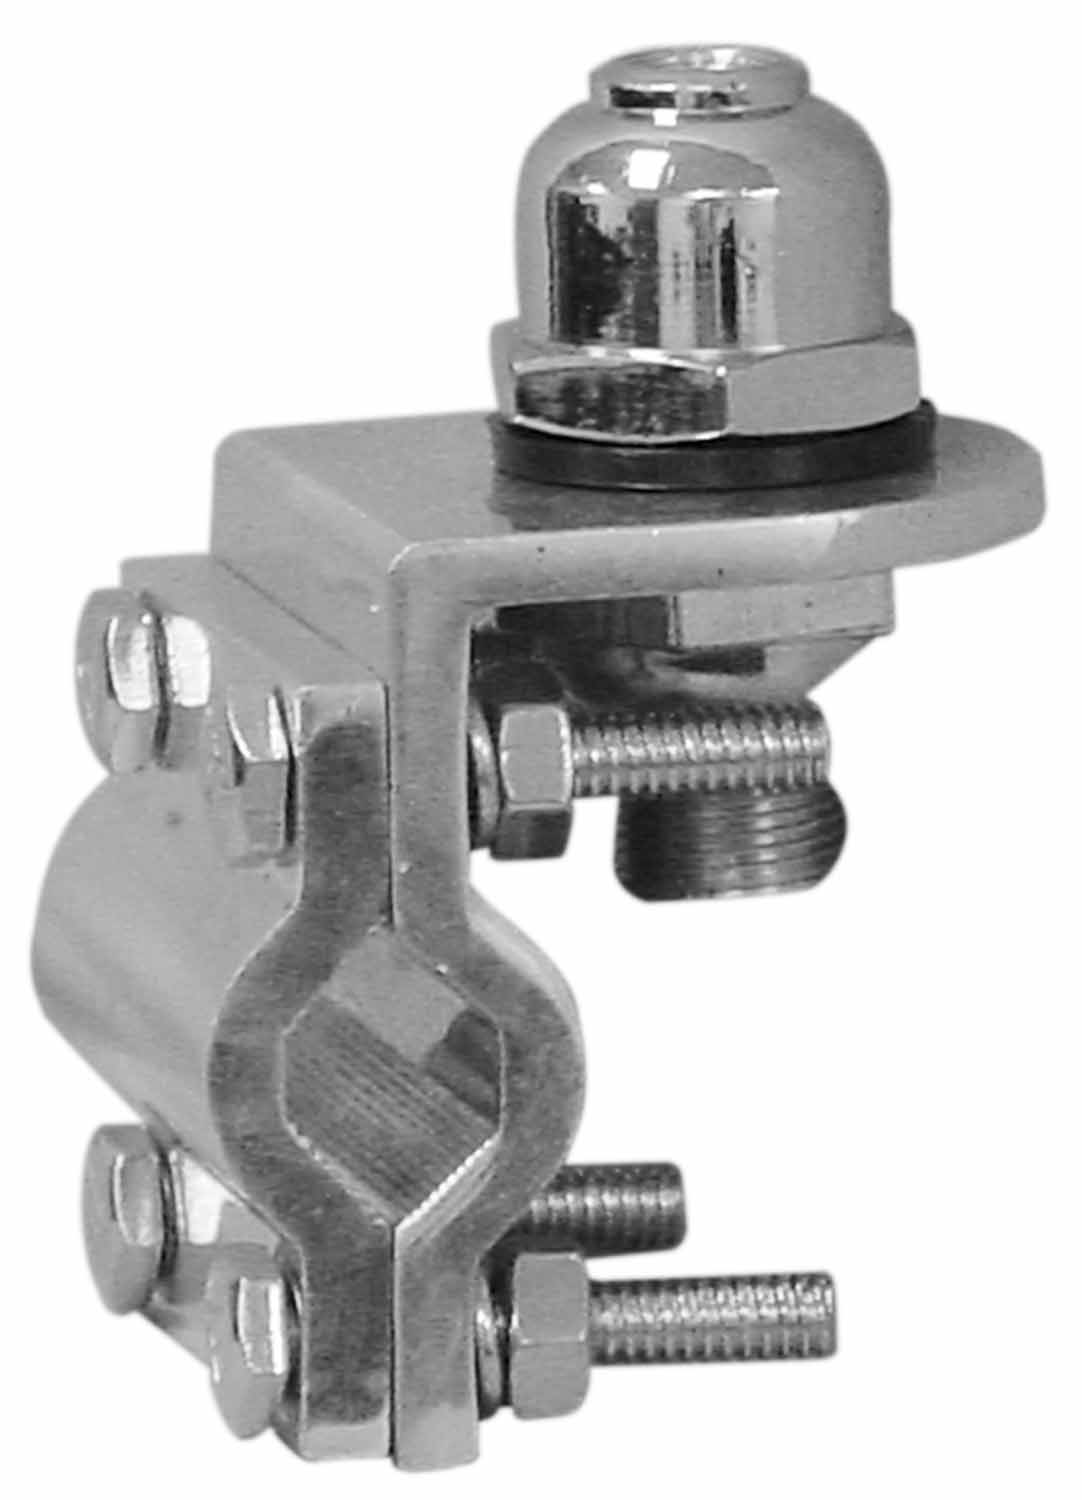 30053707 - Double Groove Antenna Mount with Dome Stud